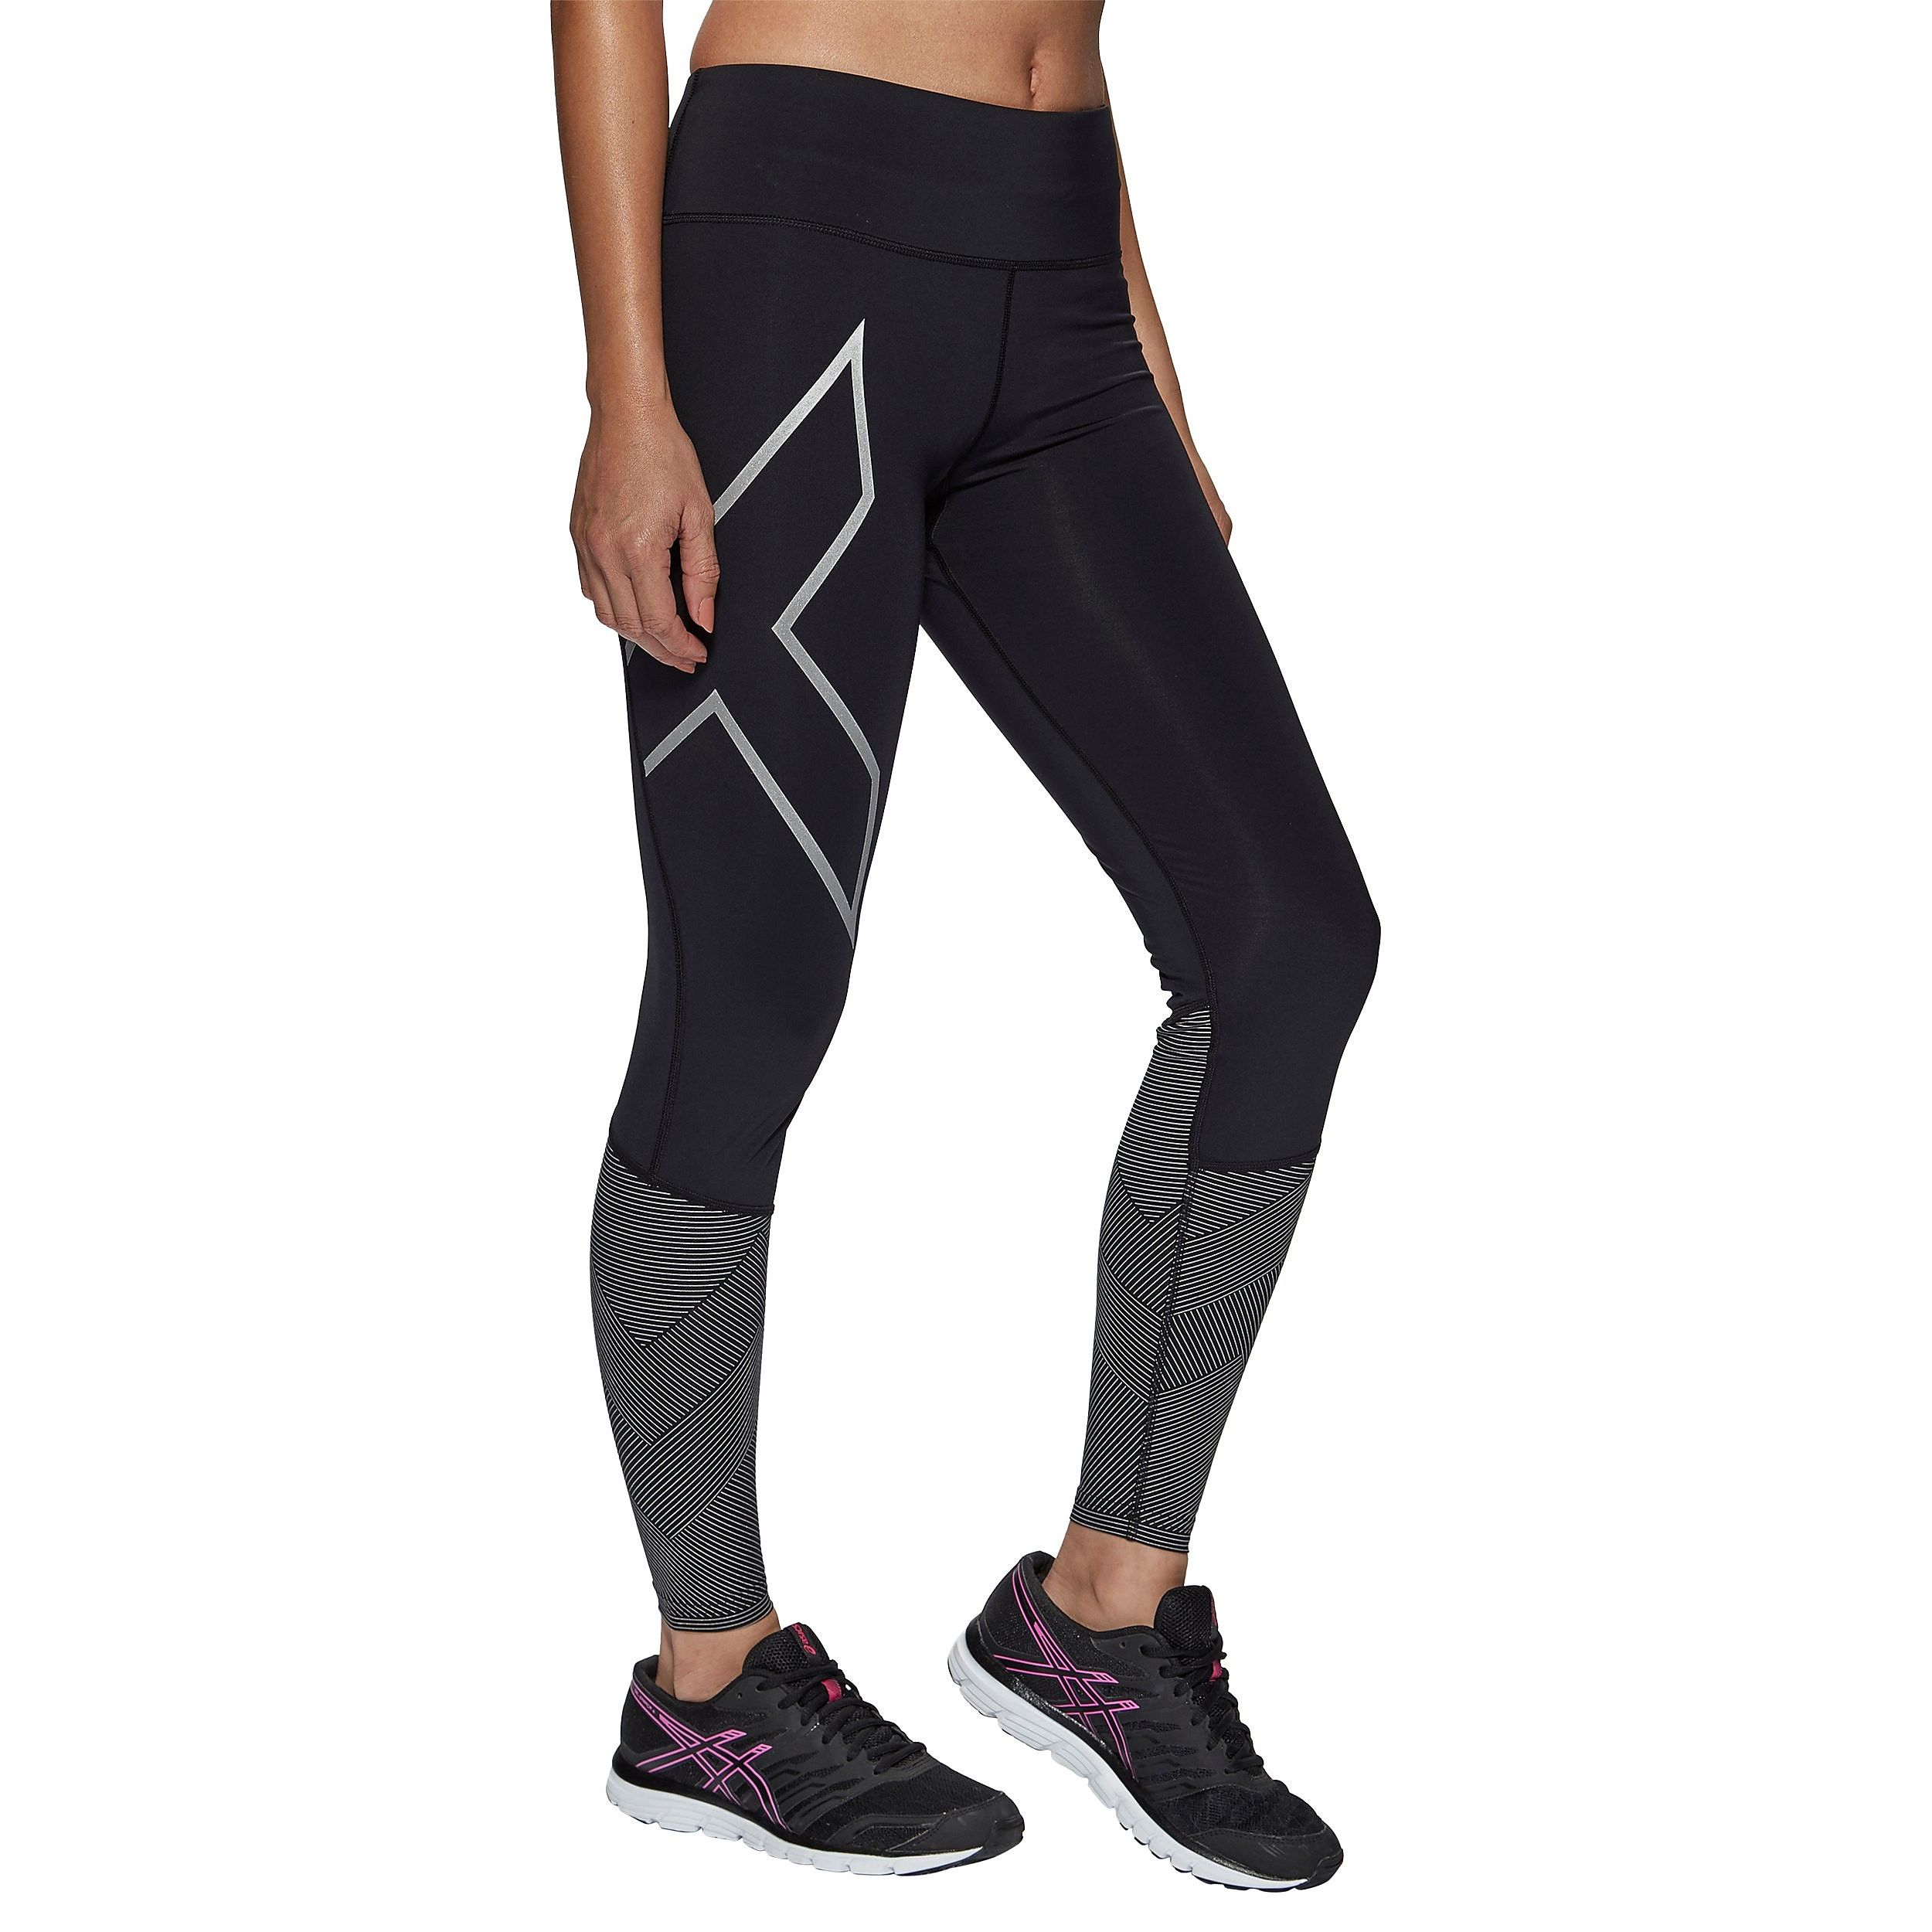 2XU MID-RISE REFLECT Women's COMPRESSION TIGHTS